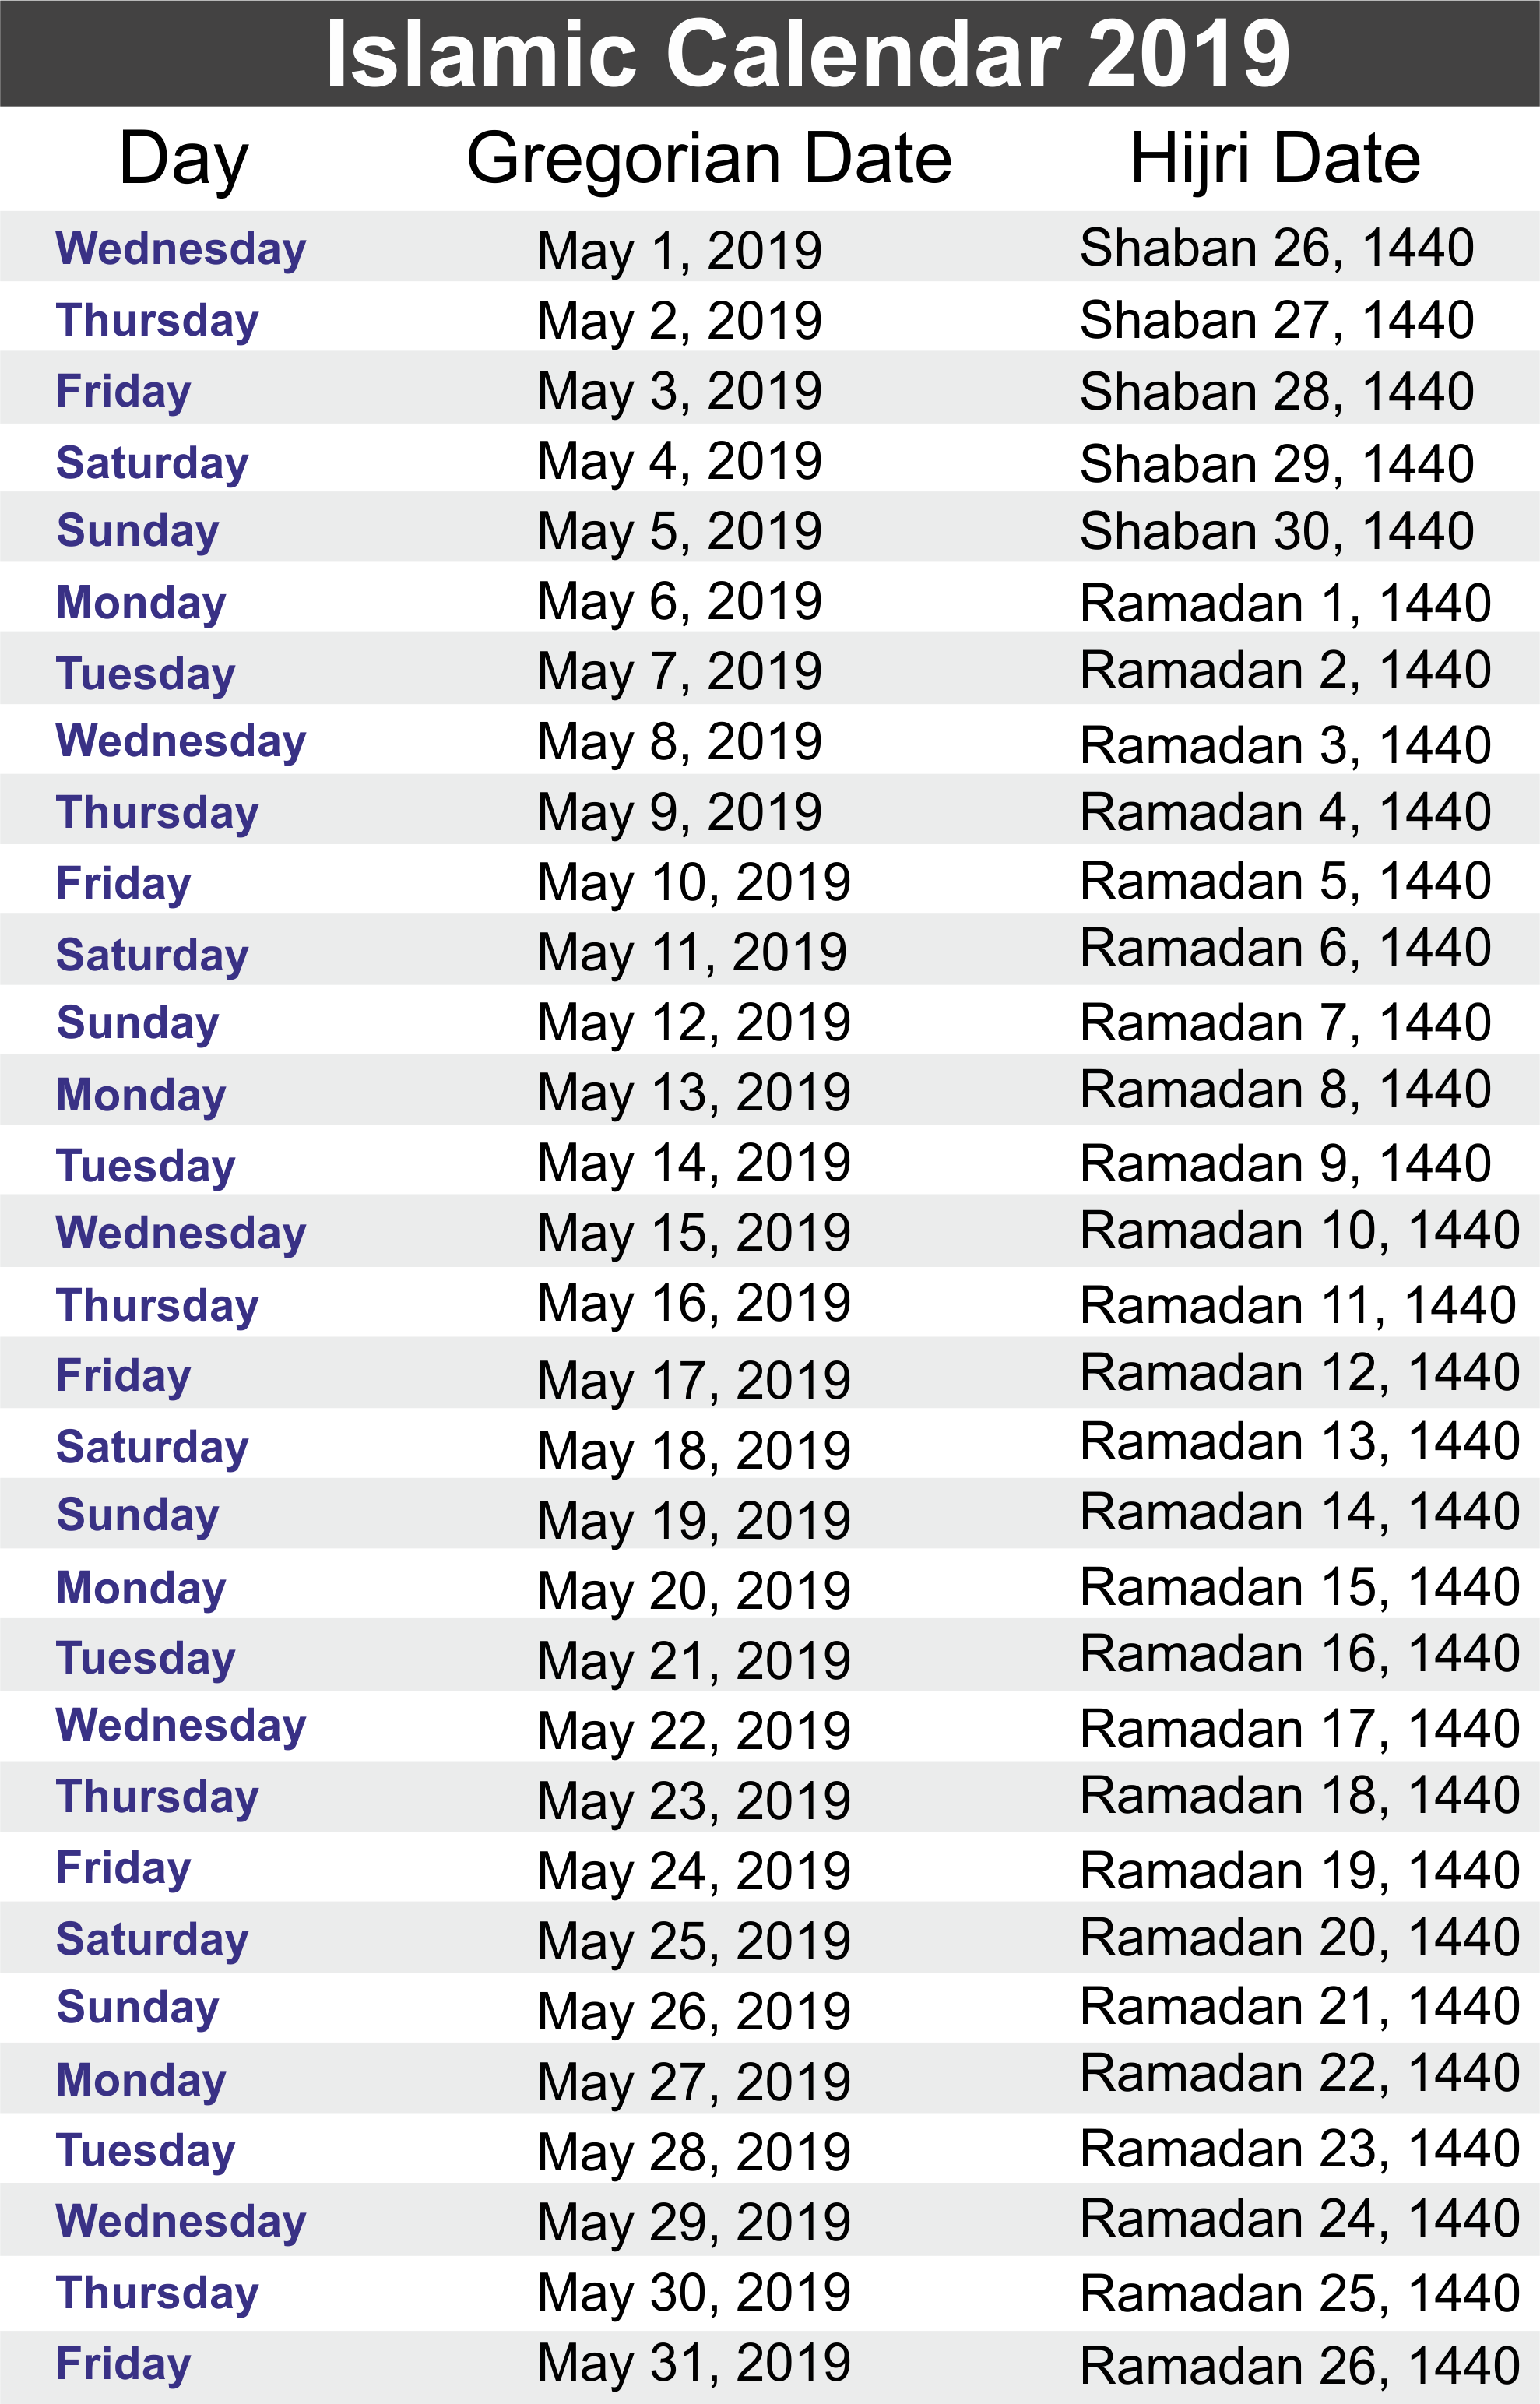 Tamil New Year 2019 Calendar With Yearly Islamic Hijri Public Holidays 2018